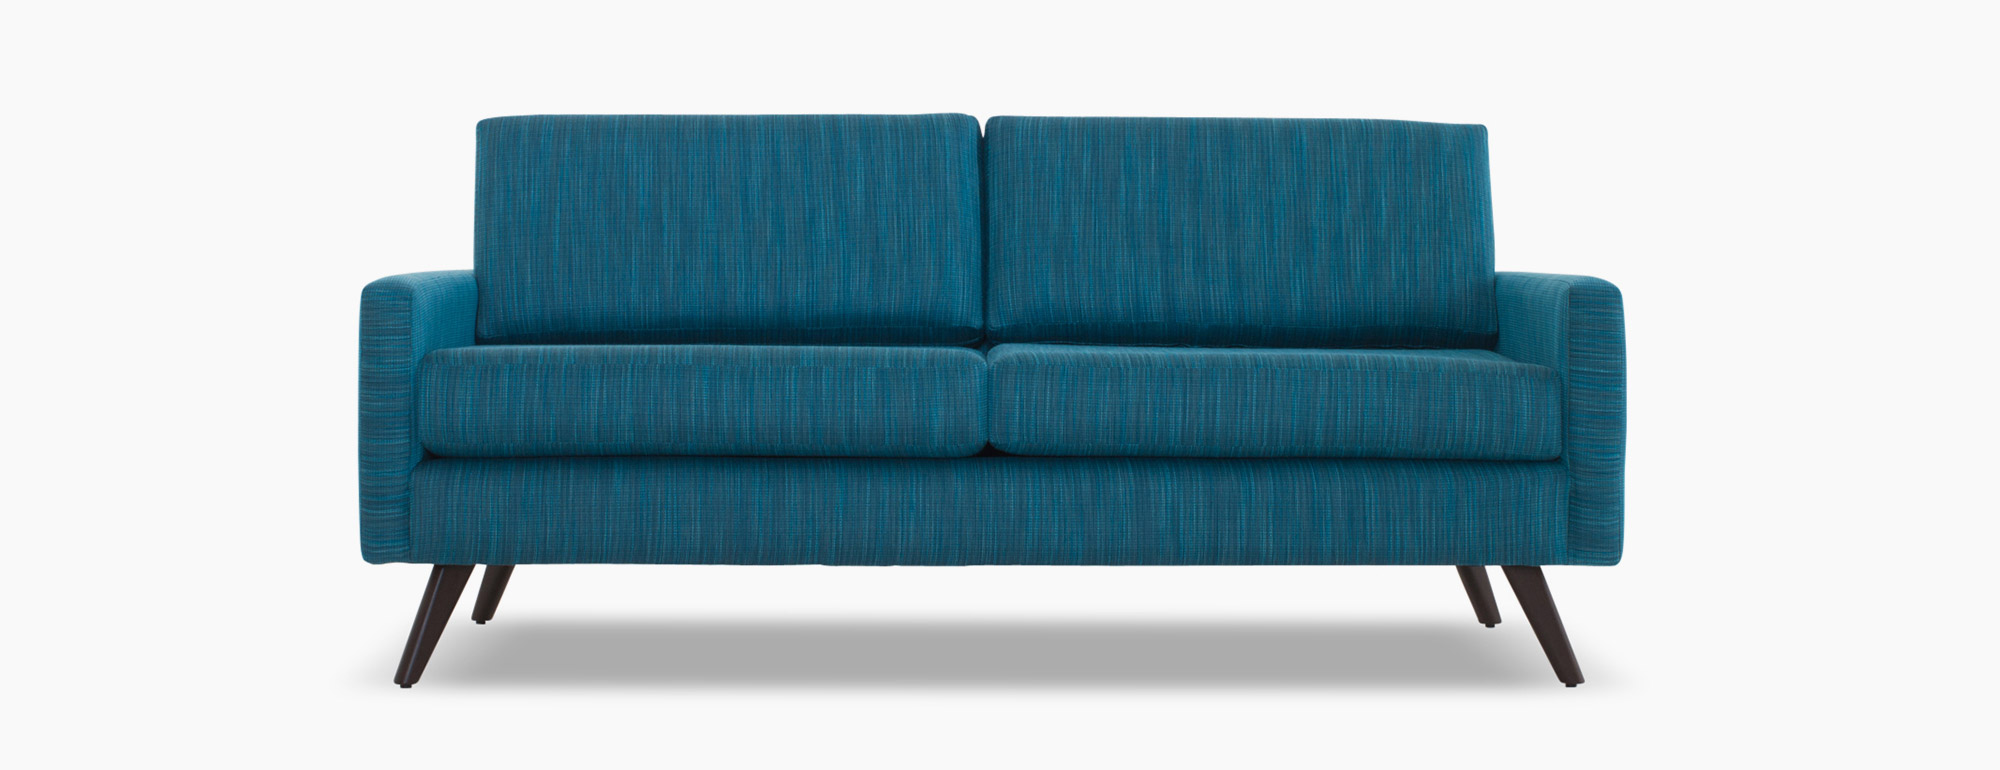 hero-mora-loveseat-1